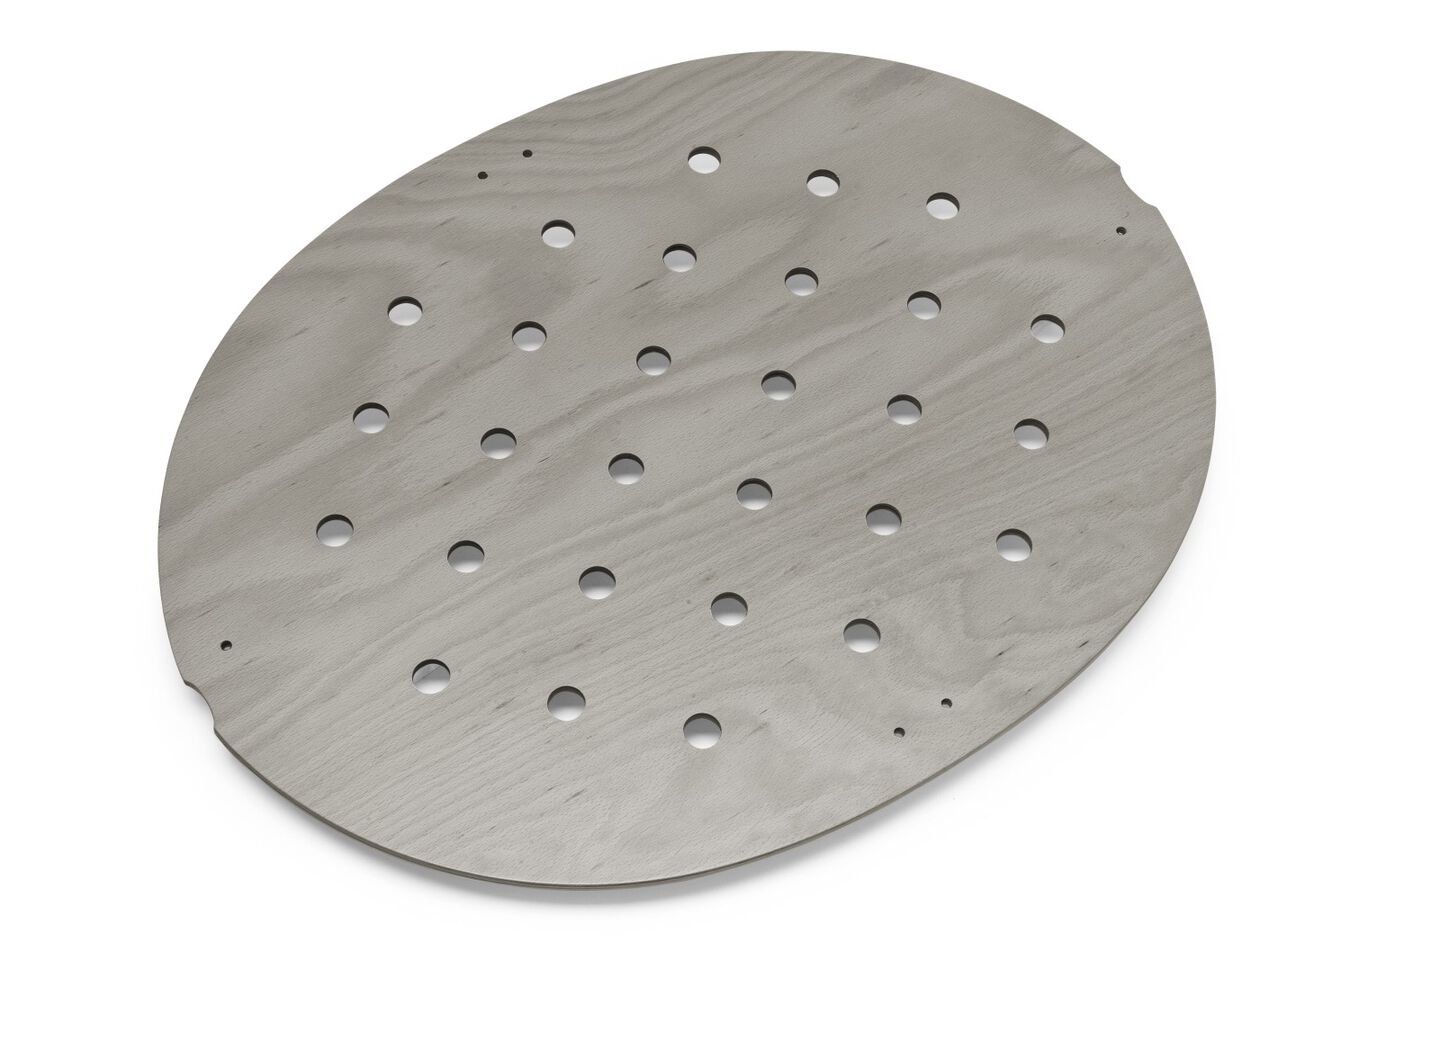 115301 Sleepi Plywood mini Hazy Grey. Sparepart.